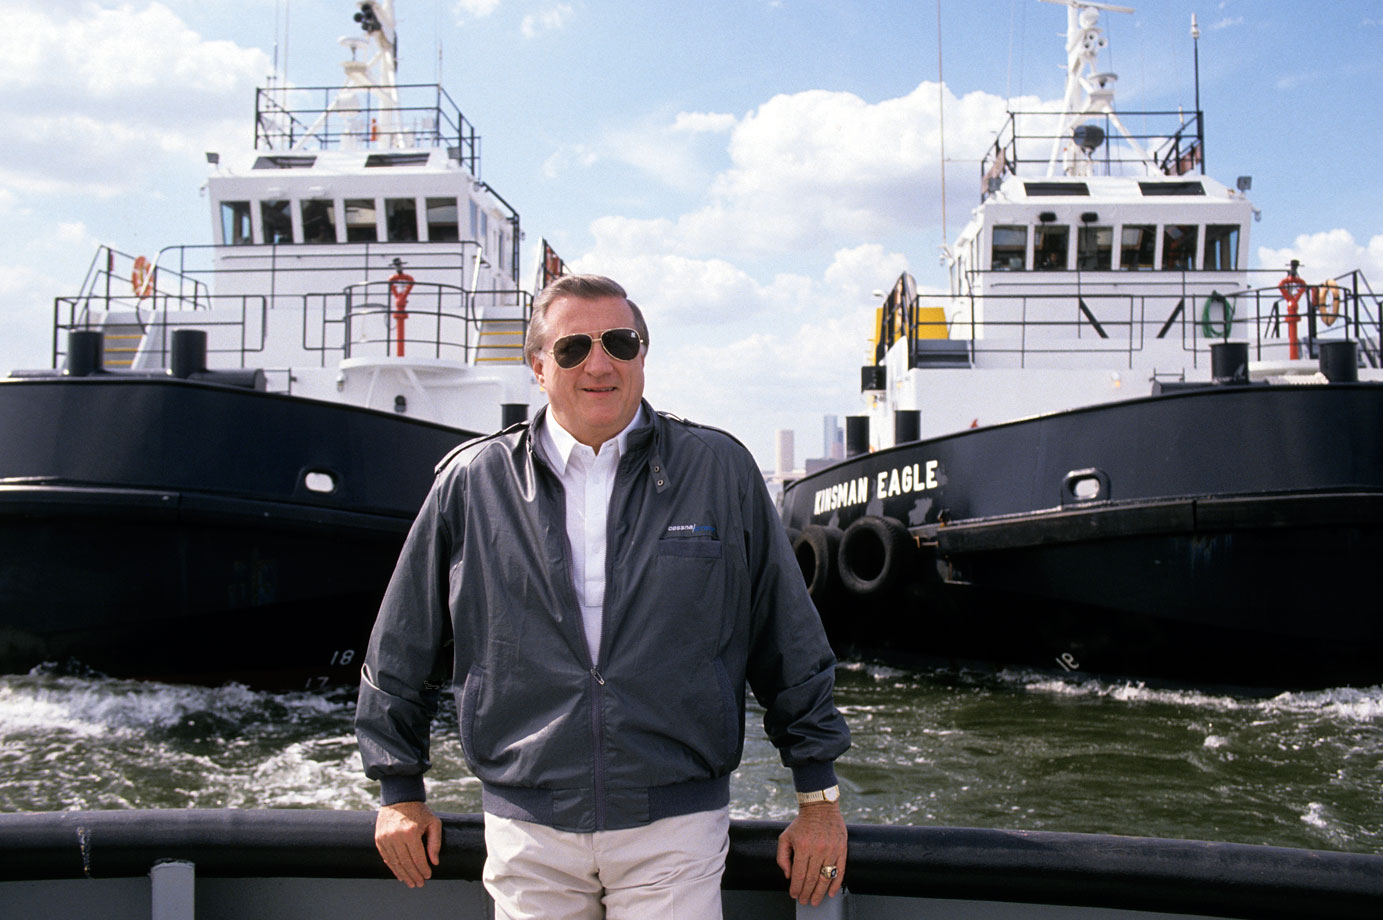 George Steinbrenner poses in front of tugboats along a dock for the American Ship Building Company on May 3, 1990 in Tampa, Fla.